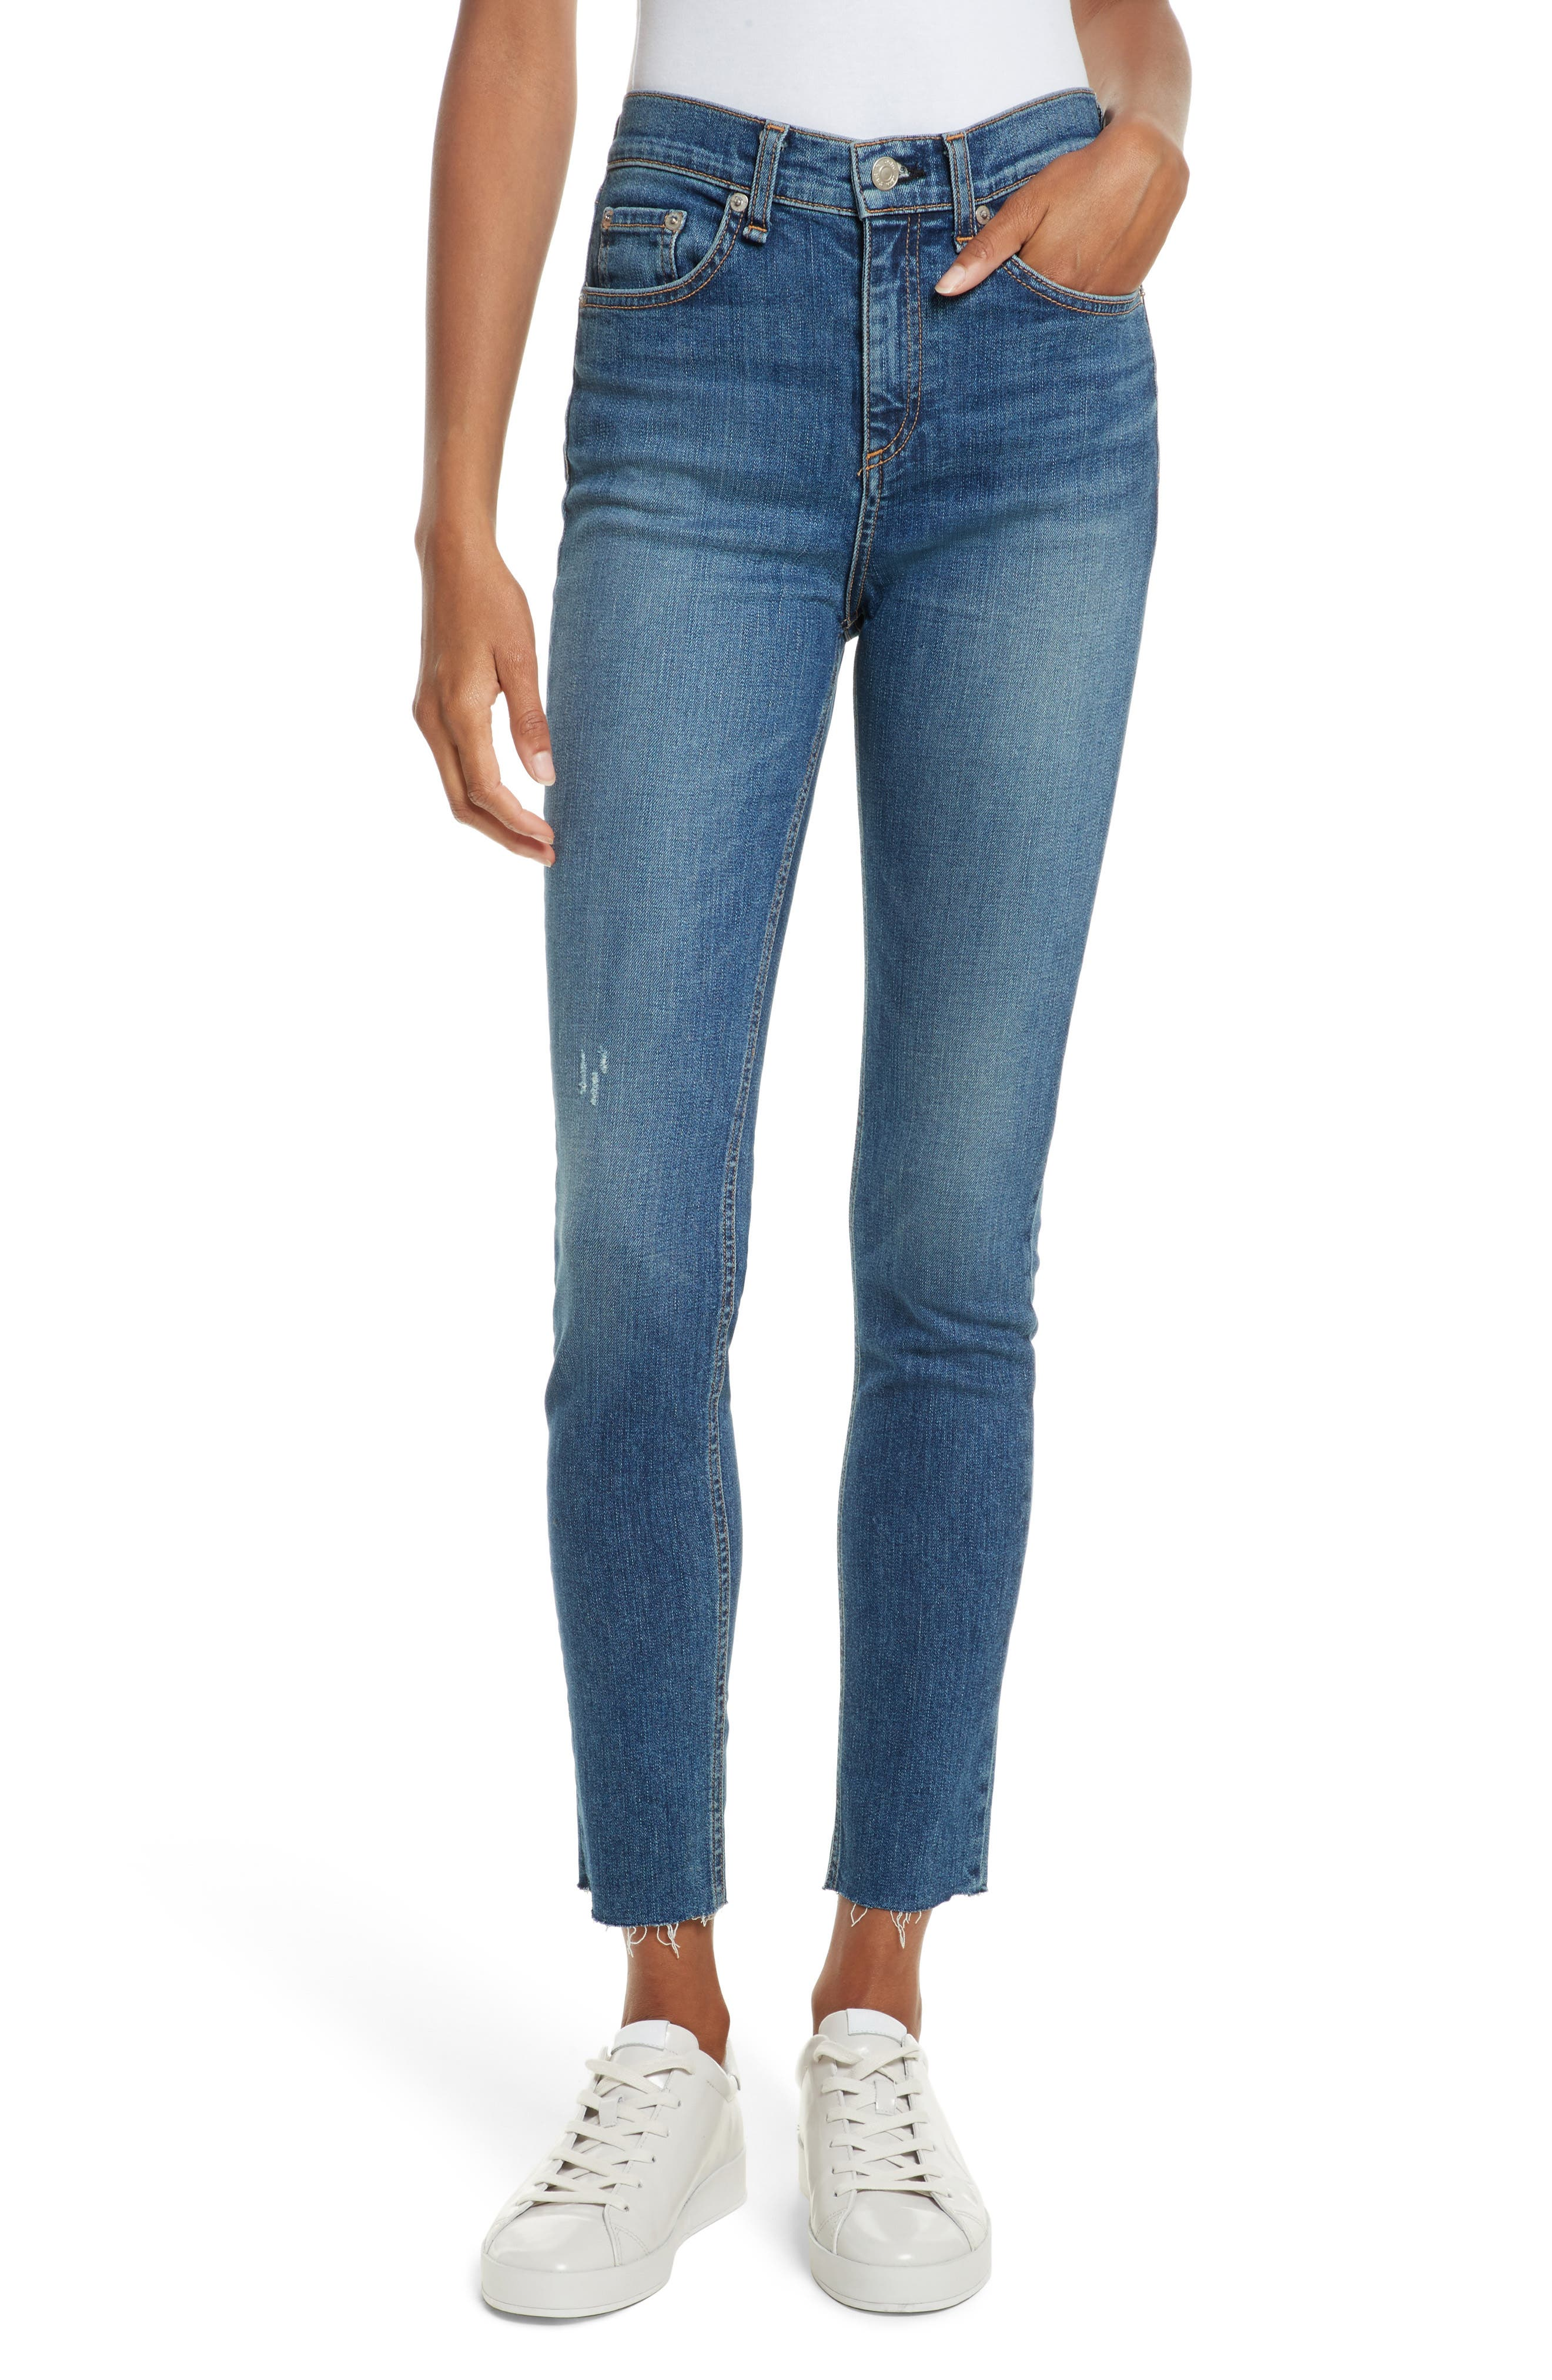 Alternate Image 1 Selected - rag & bone/JEAN High Waist Skinny Jeans (El)